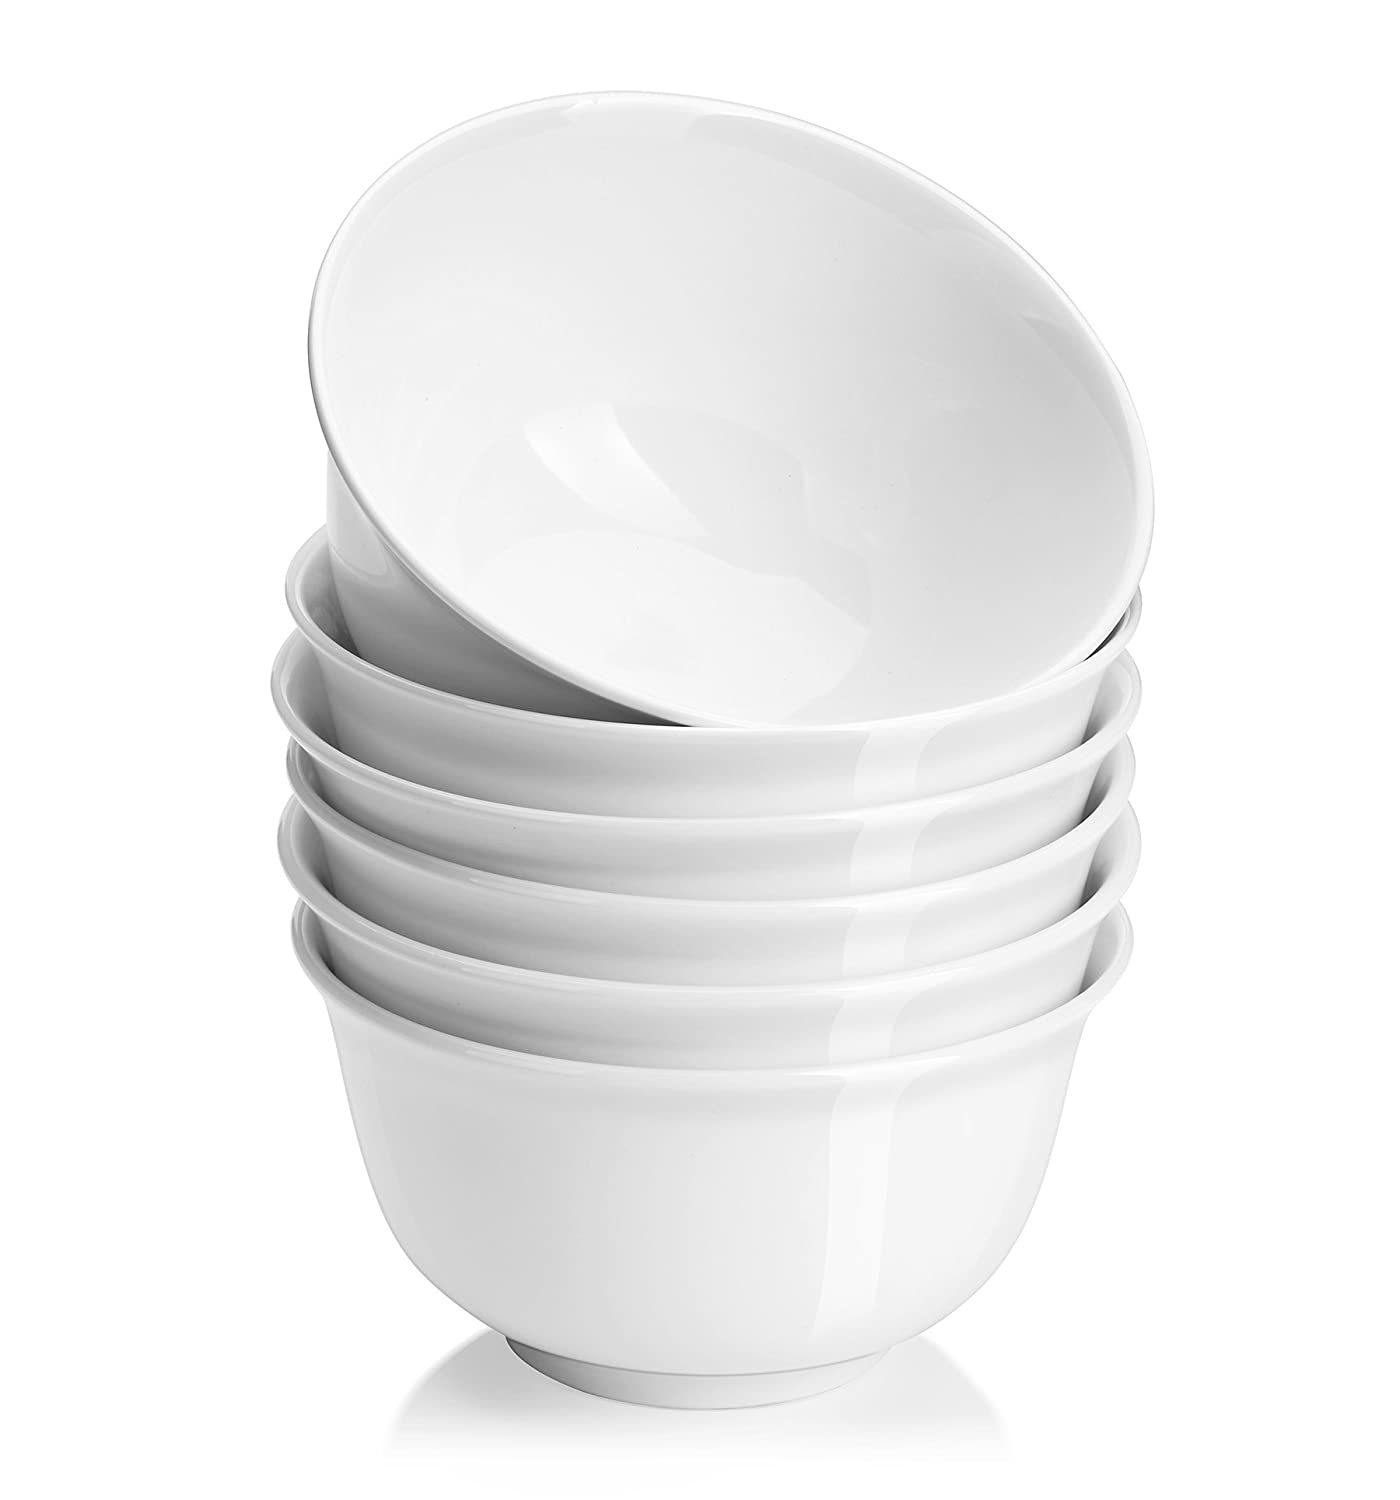 DOWAN 20 oz Porcelain Cereal/Soup Bowl Set - 6 packs, White, Deep